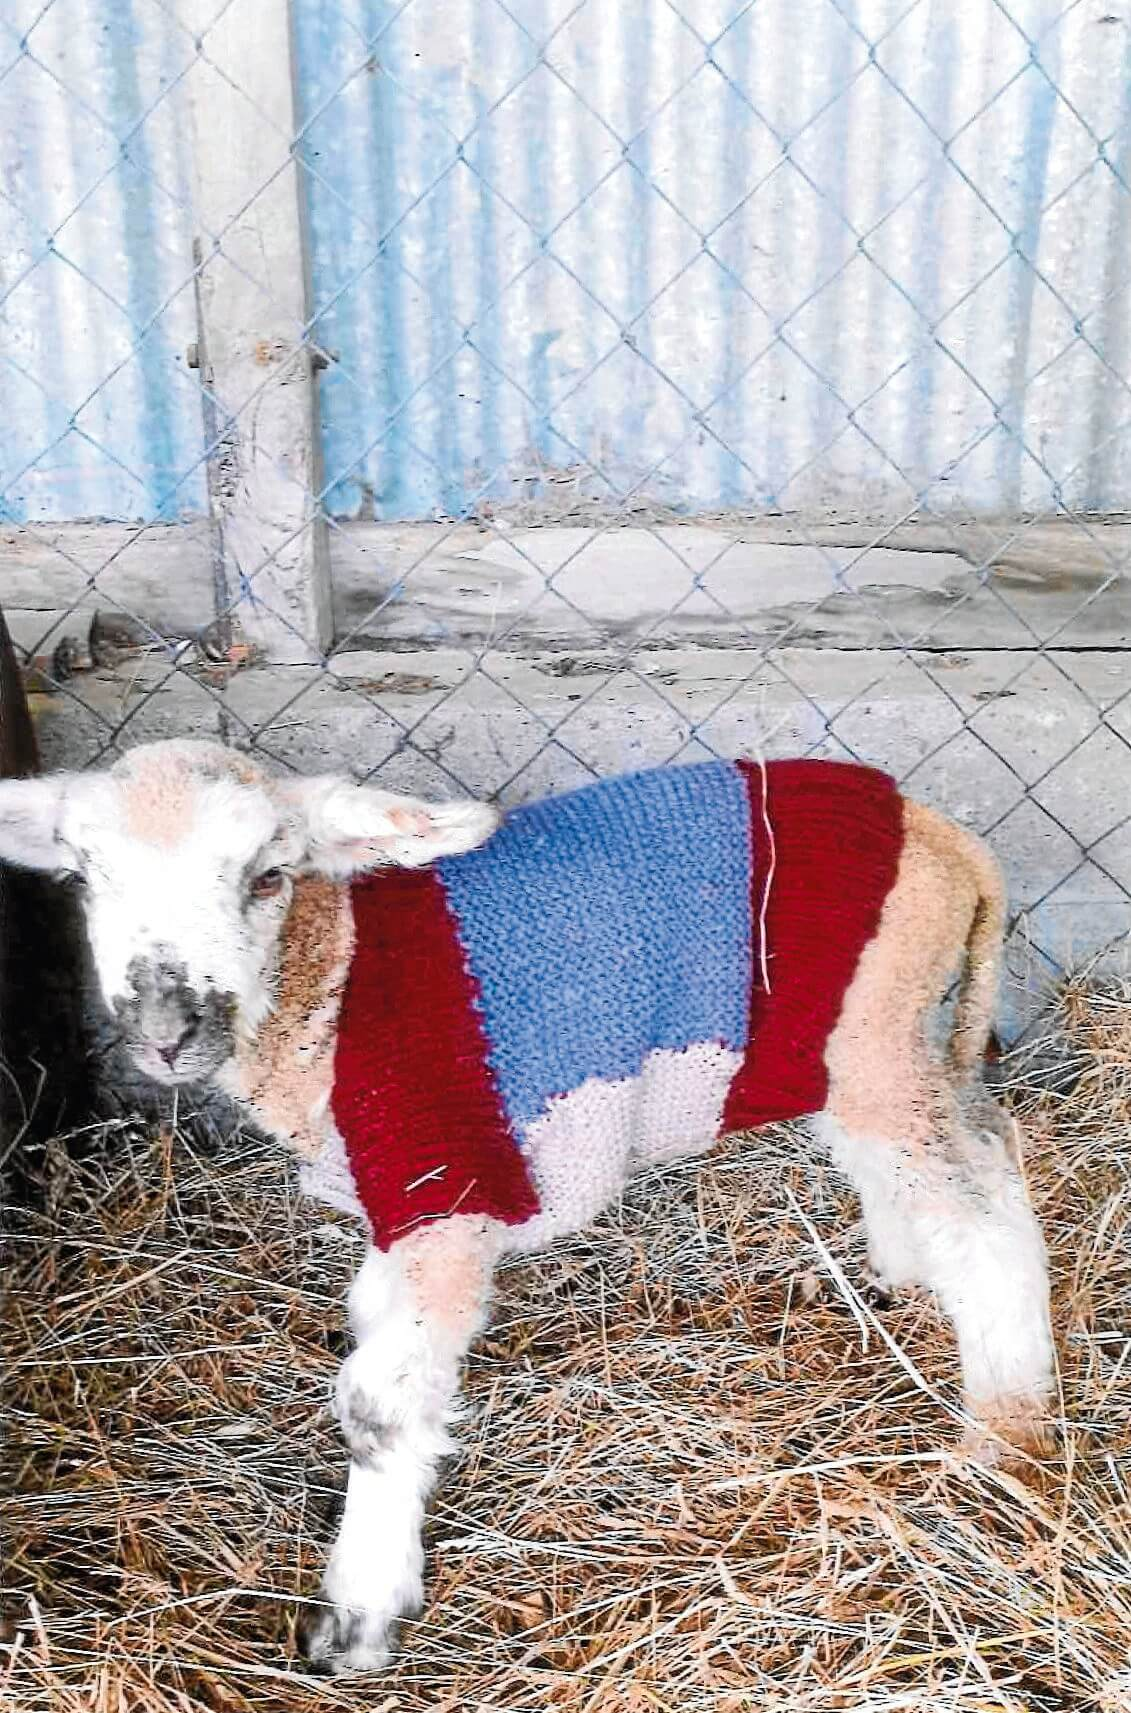 • One of the woolly beneficiaries of this charitable program.